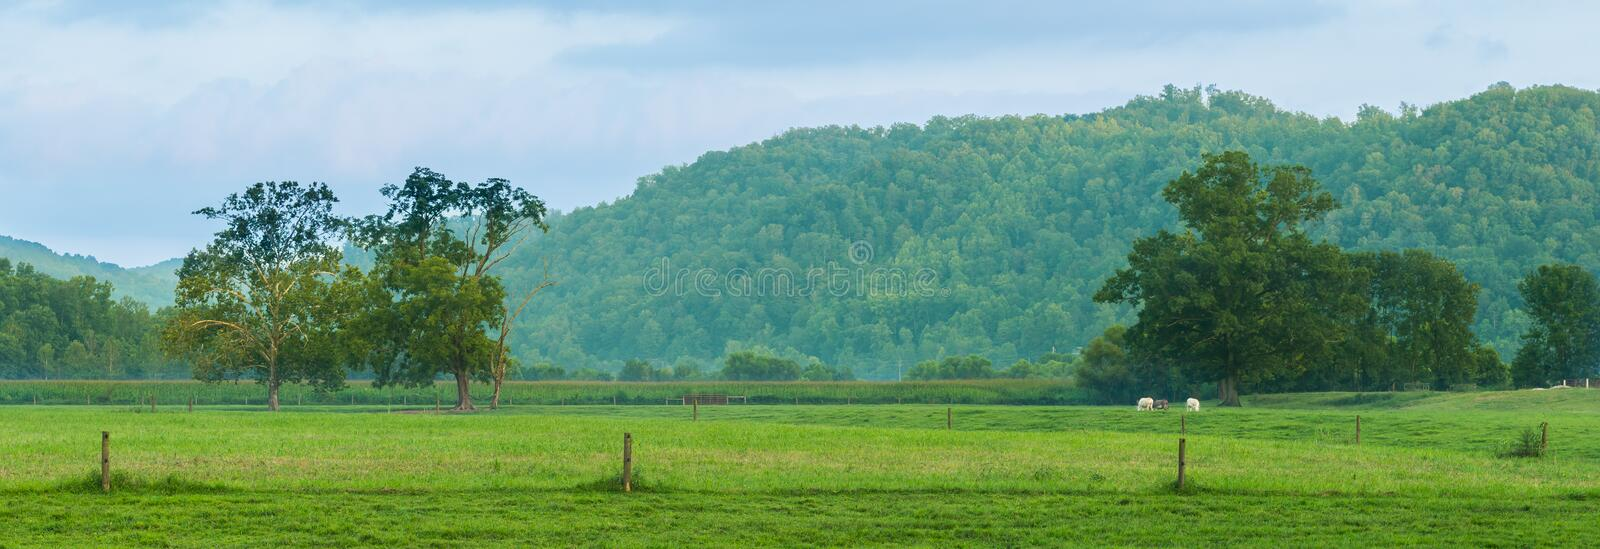 Grazing Cows Powell County, KY stock images